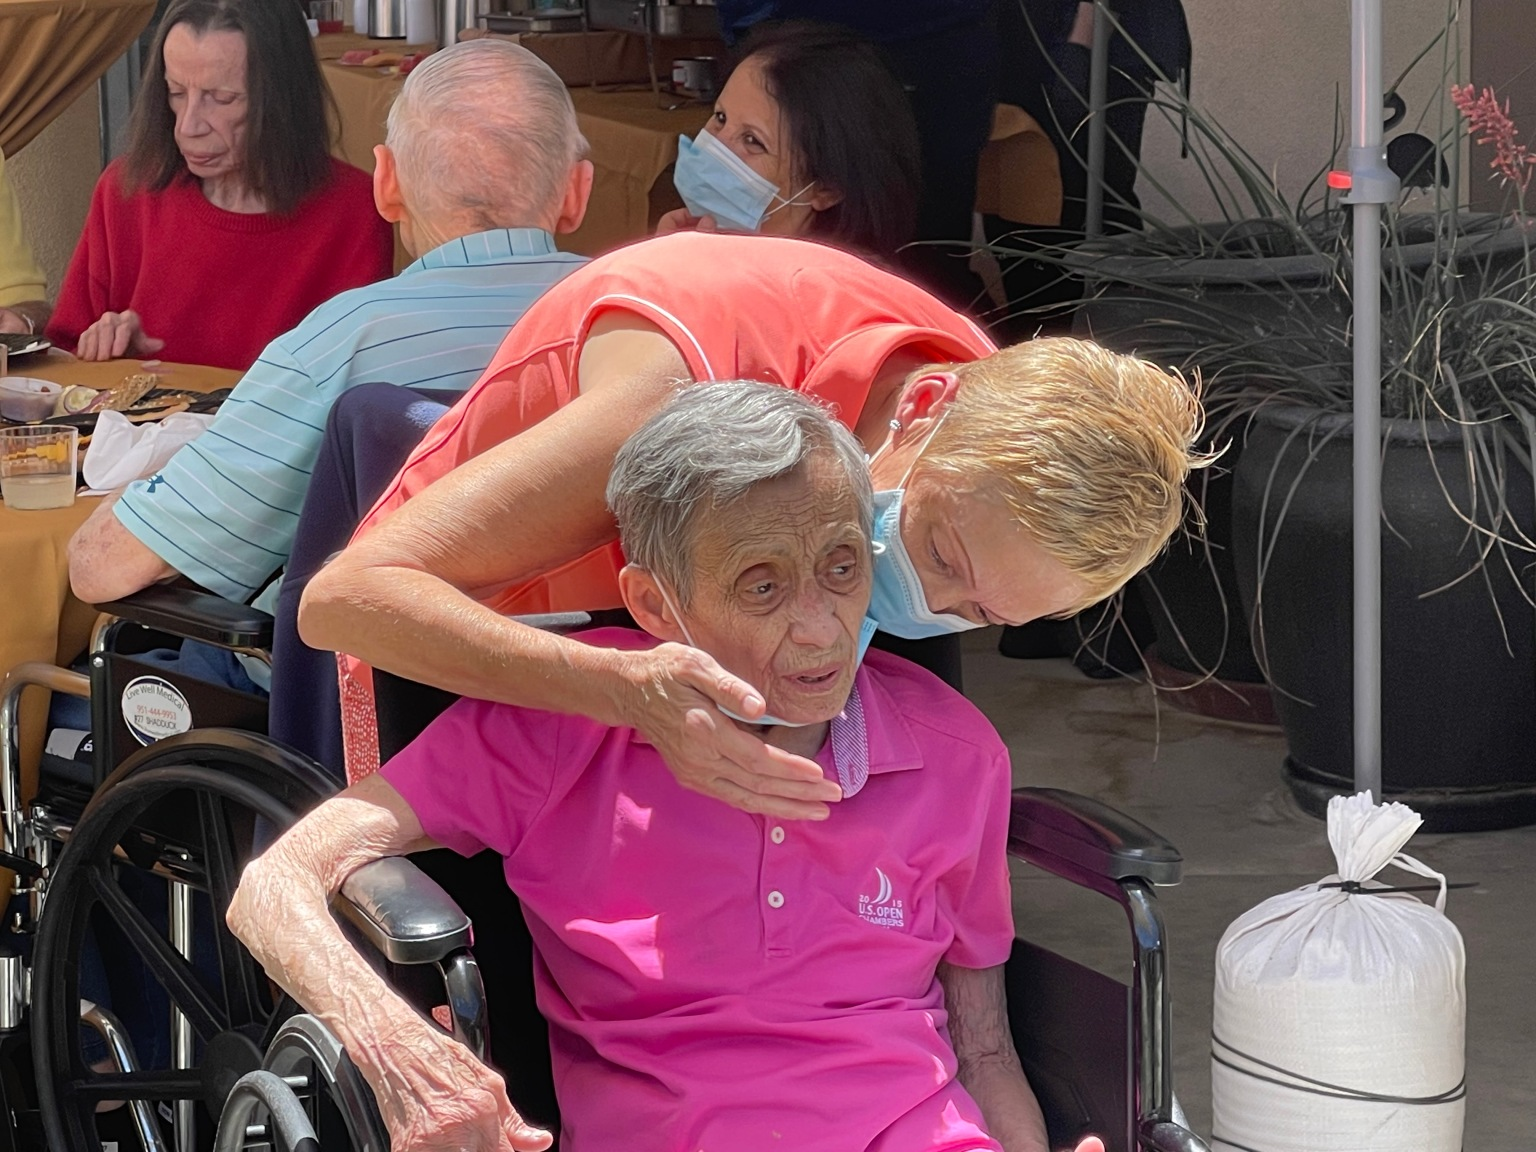 Once Off Limits, Assisted Living Hosts Post Pandemic Family Celebration